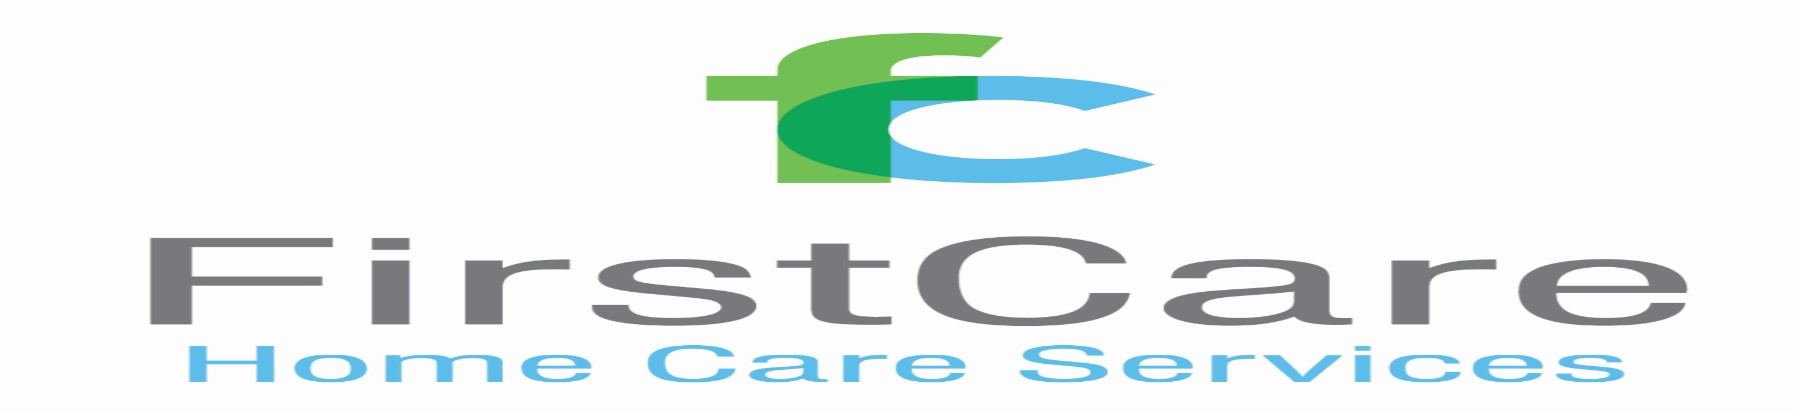 FirstCare Home Care Services at Chesterton, IN